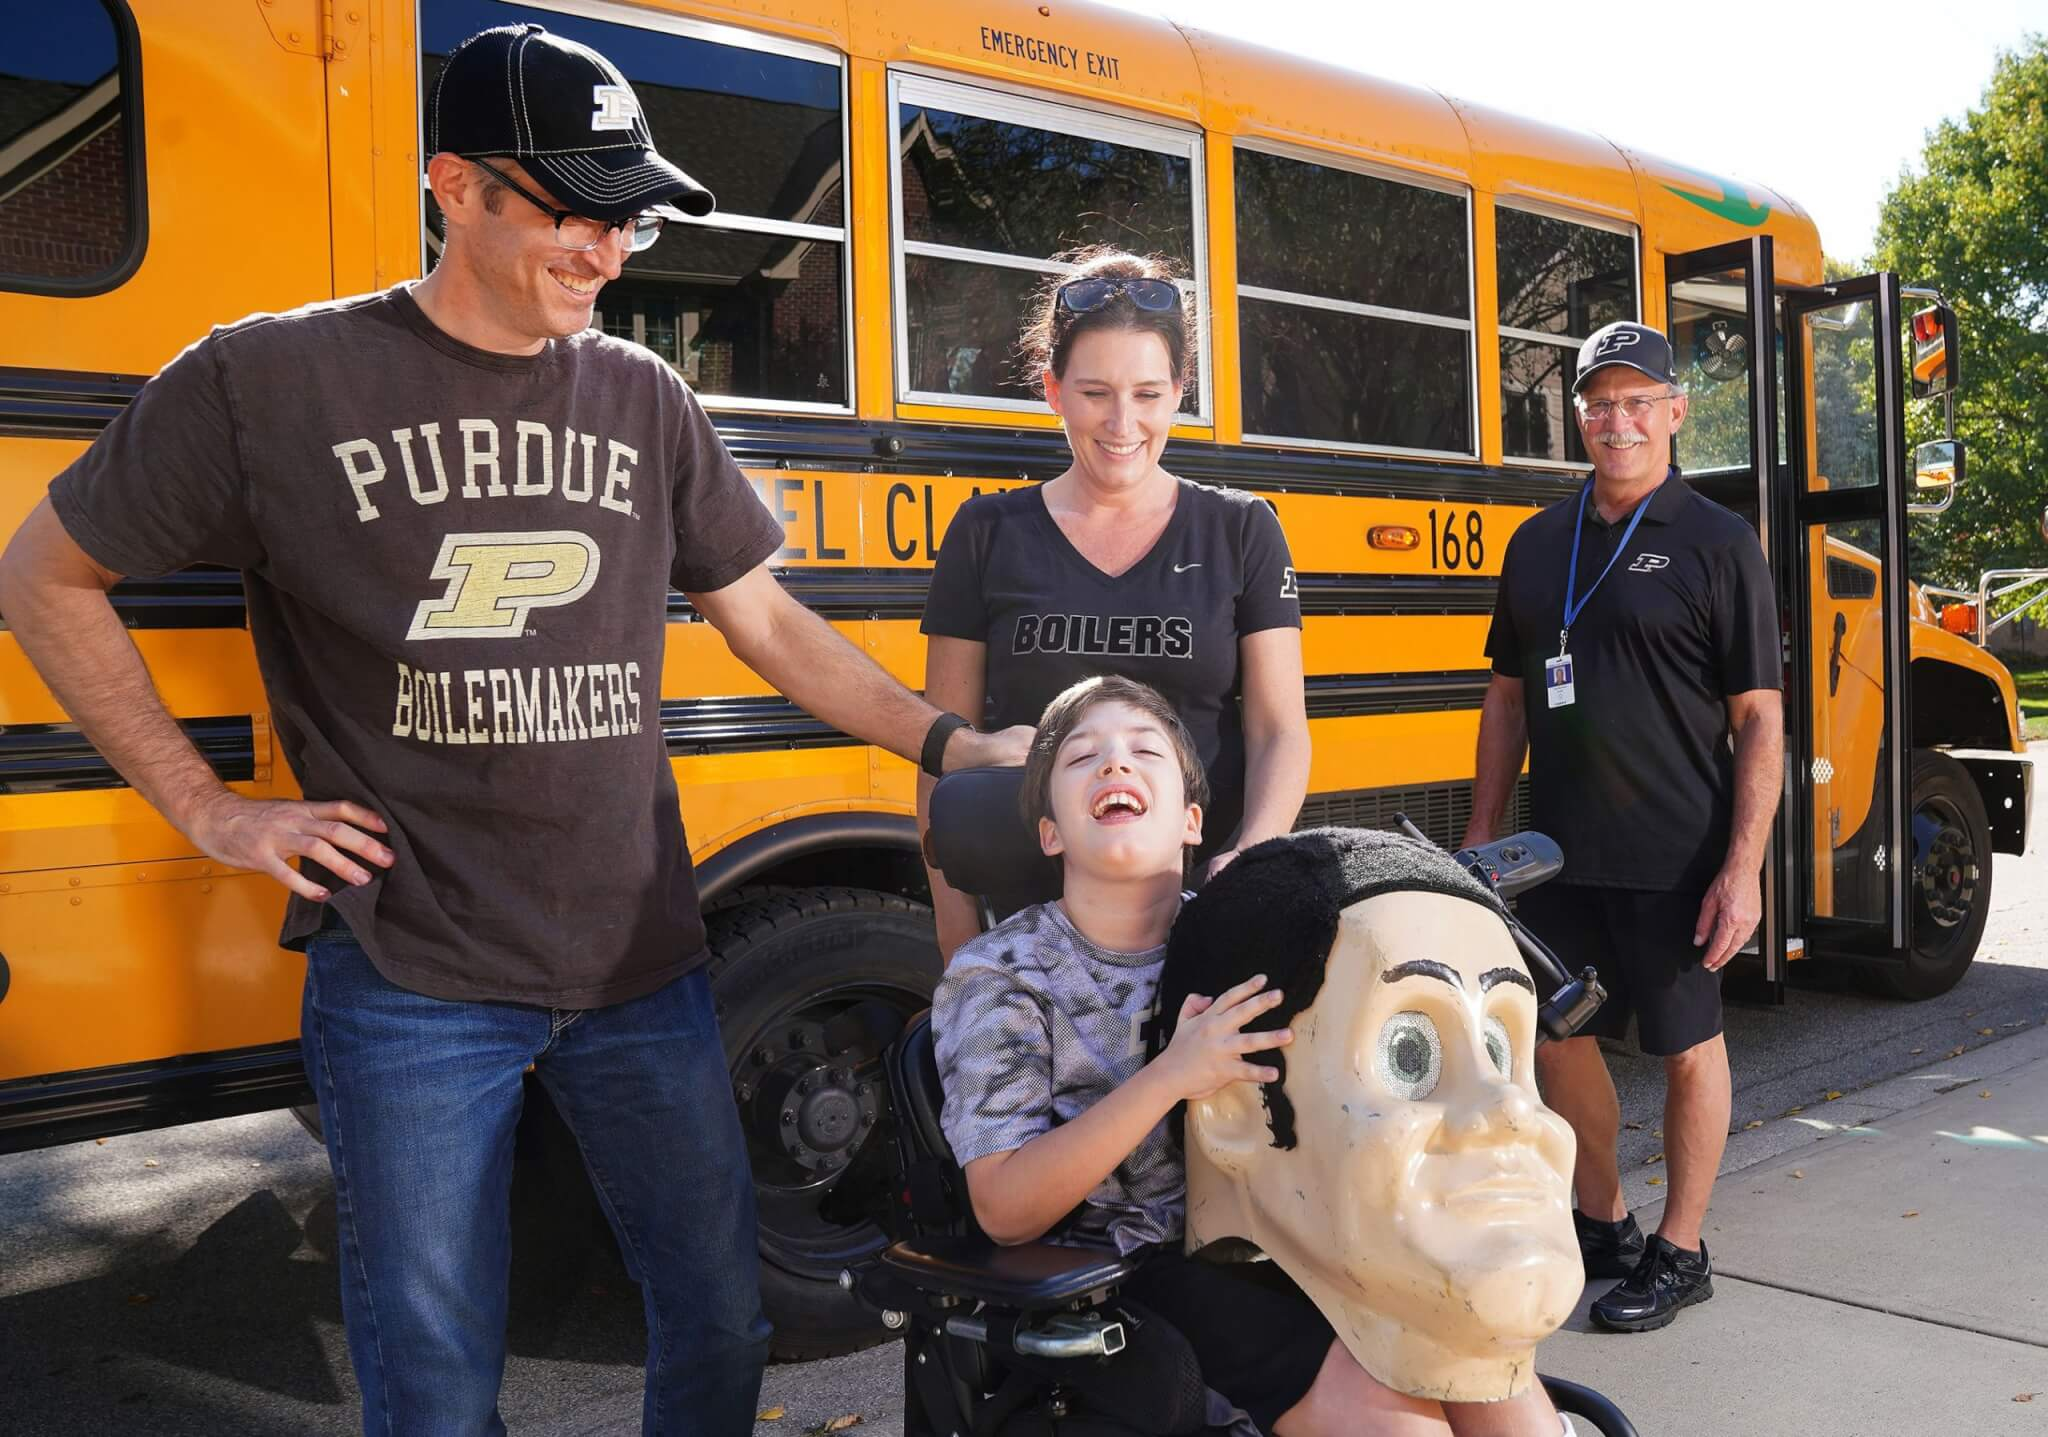 Former Purdue Pete and local family in front of bus